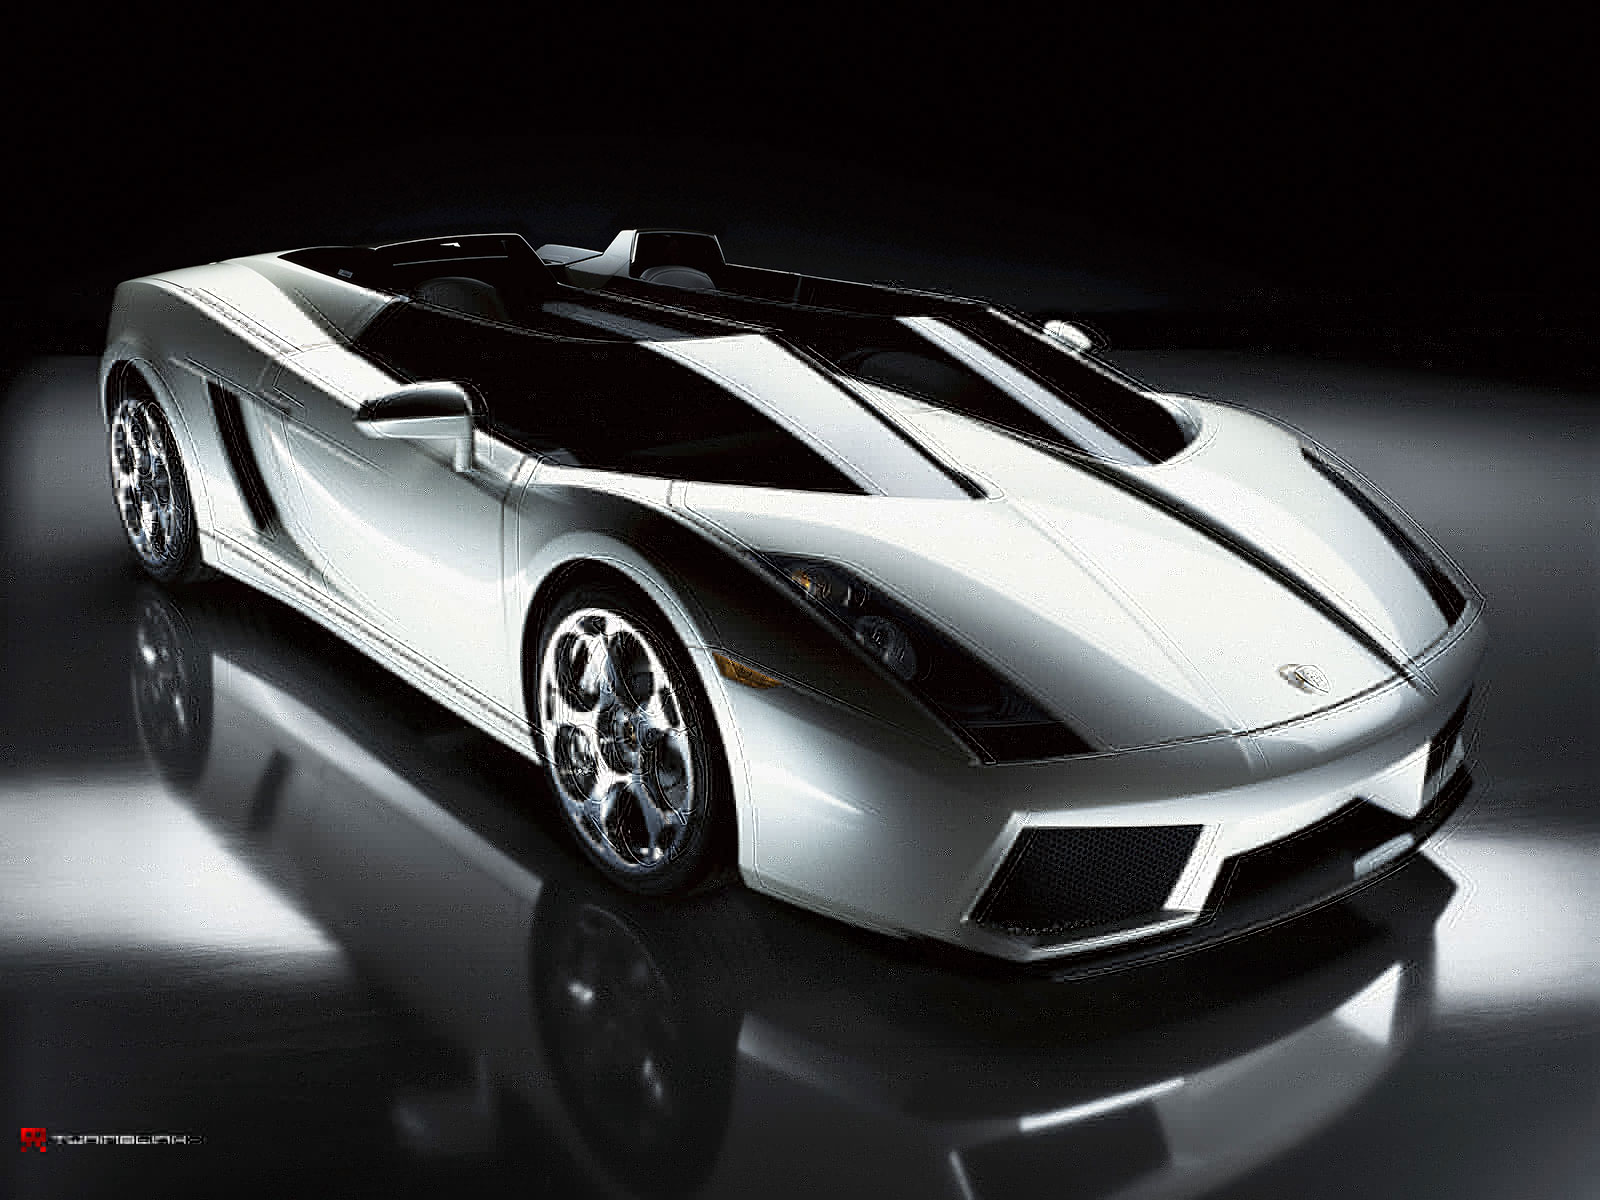 The Best Cars From Lamborghini Automotive Cars